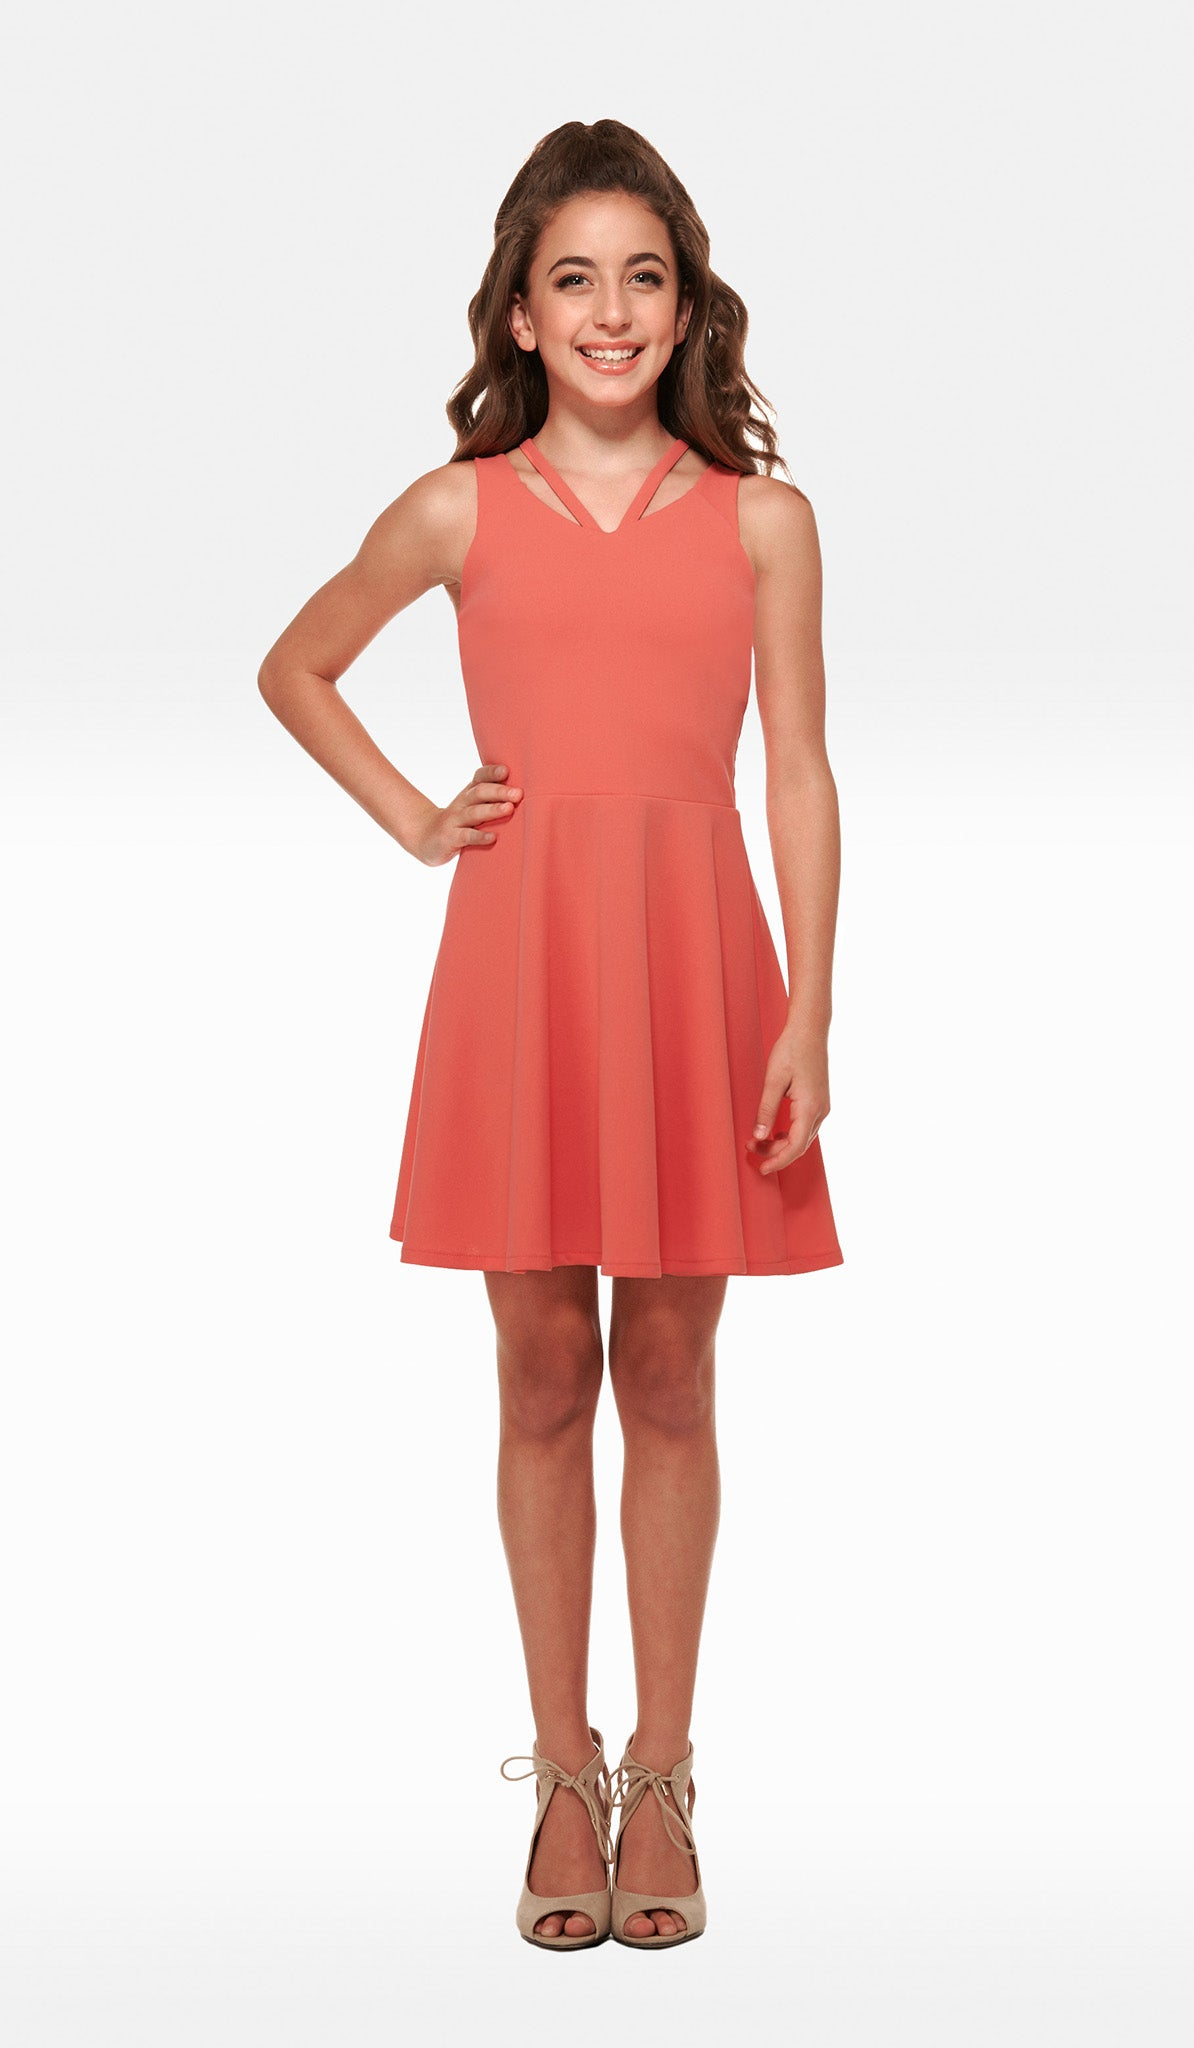 The Sally Miller Georgia Dress - Coral crepe georgette fit and flare dress with double straps